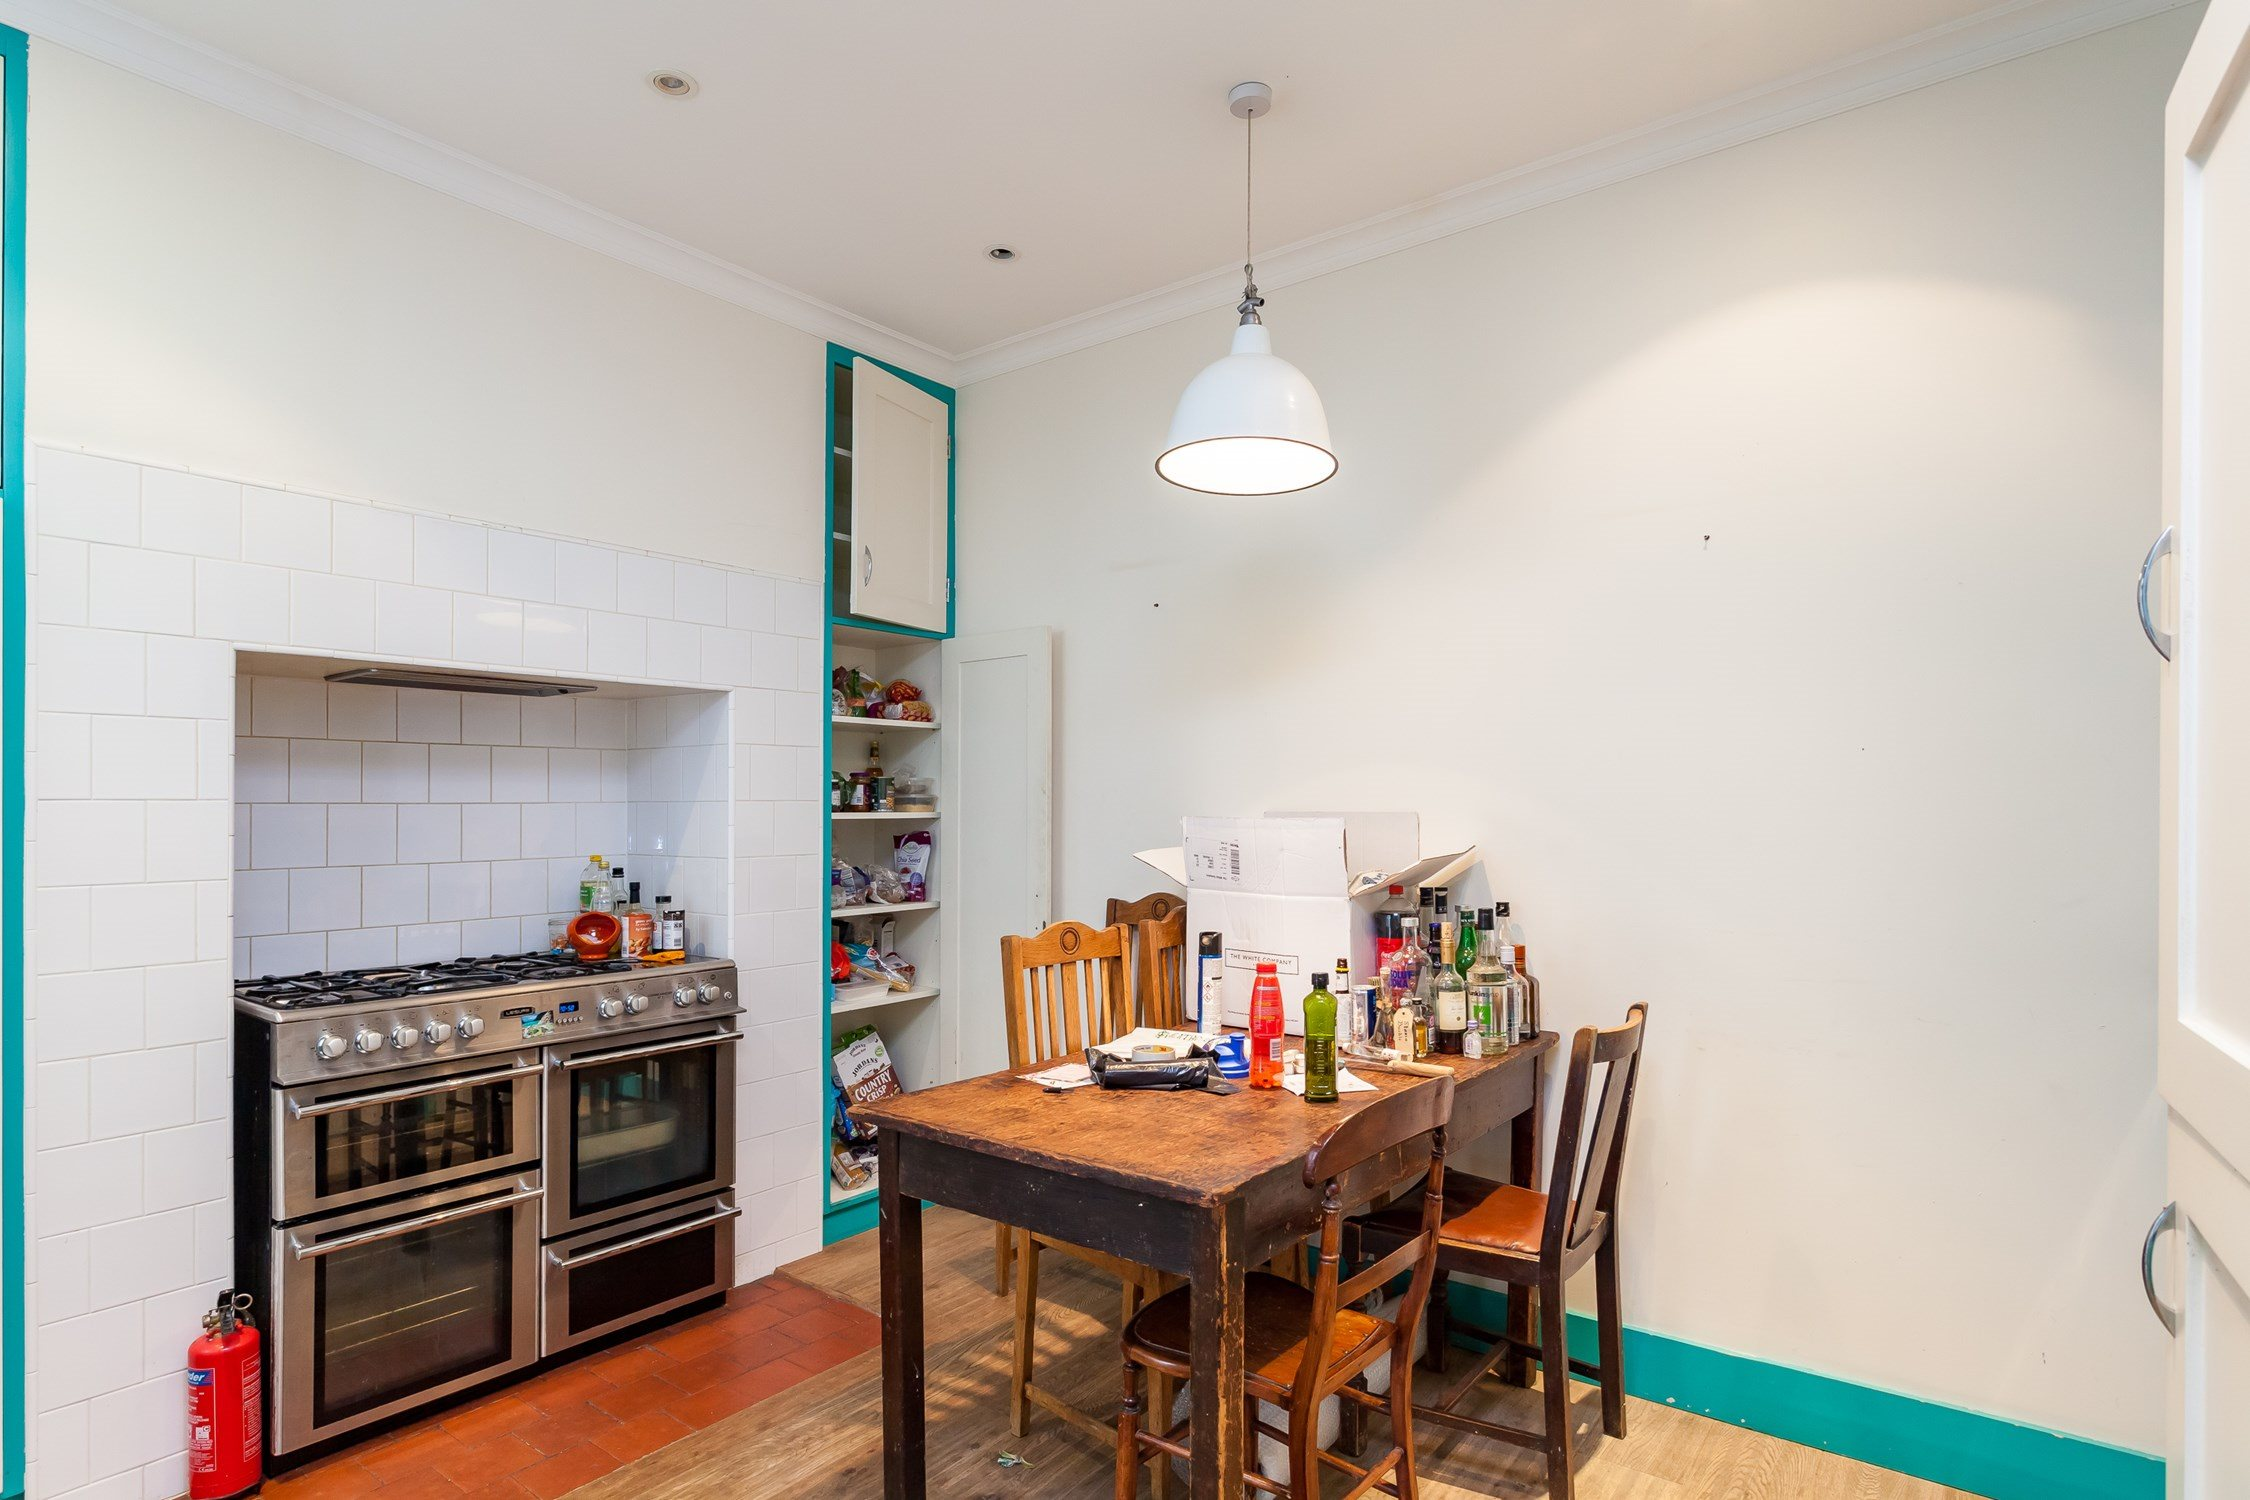 Portico - 3 Bedroom Flat recently let in Bloomsbury: Southampton Row ...